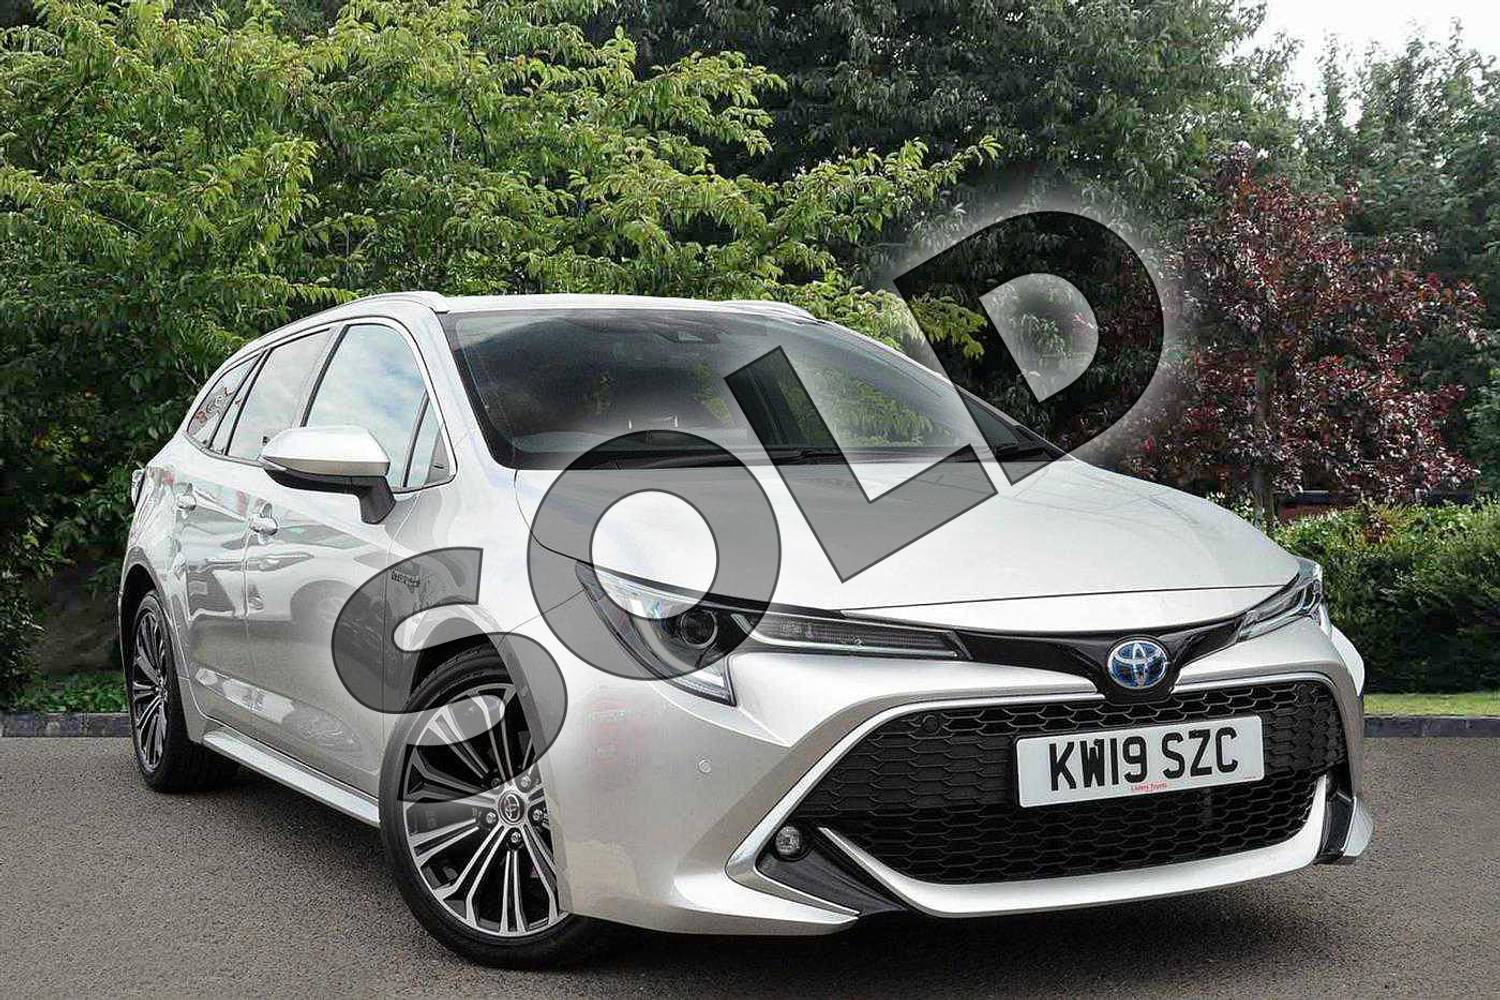 2019 Toyota Corolla Touring Sport Touring Sport 1.8 VVT-i Hybrid Excel 5dr CVT in Silver at Listers Toyota Nuneaton